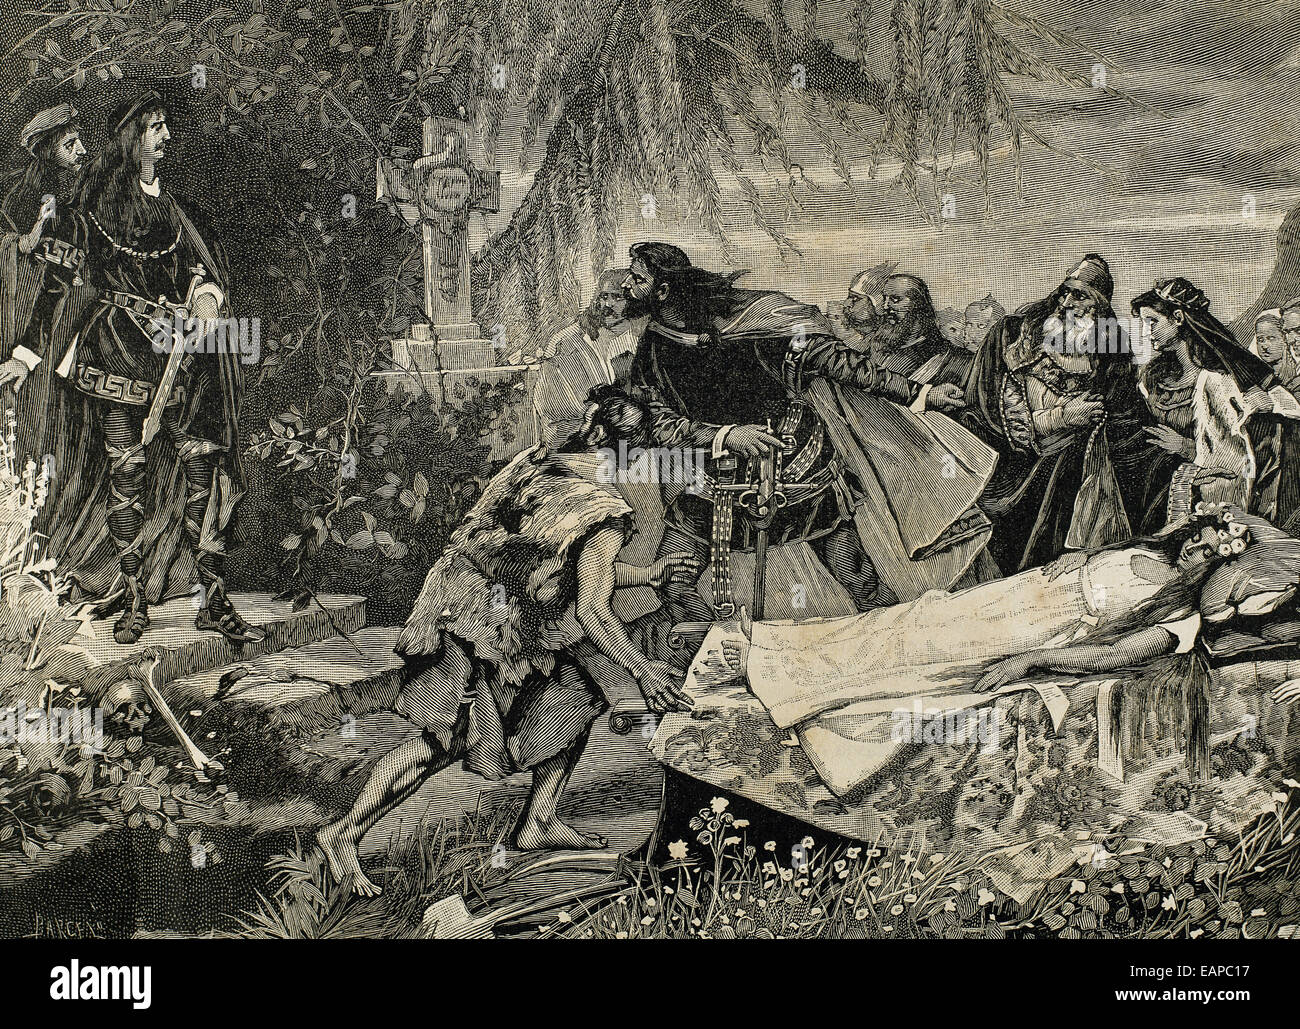 William Shakespeare (1564 – 1616).  The Tragedy of Hamlet. Ophelia's funeral. Engraving, 19th century. - Stock Image